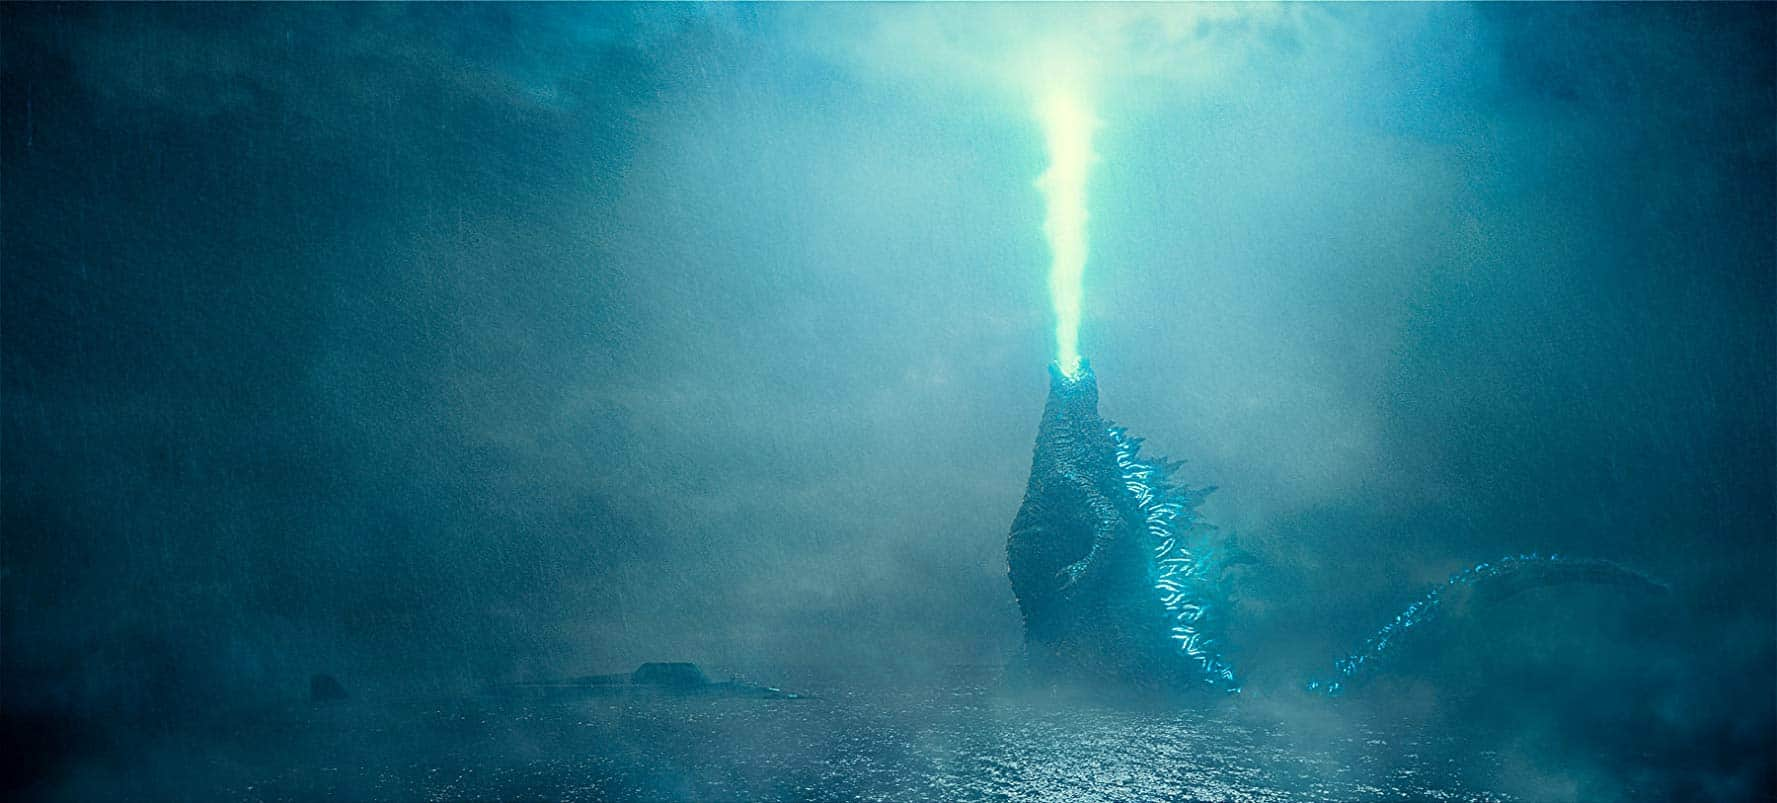 Horror Movie News: Comicon 2018 – Godzilla, King of the Monsters Trailer